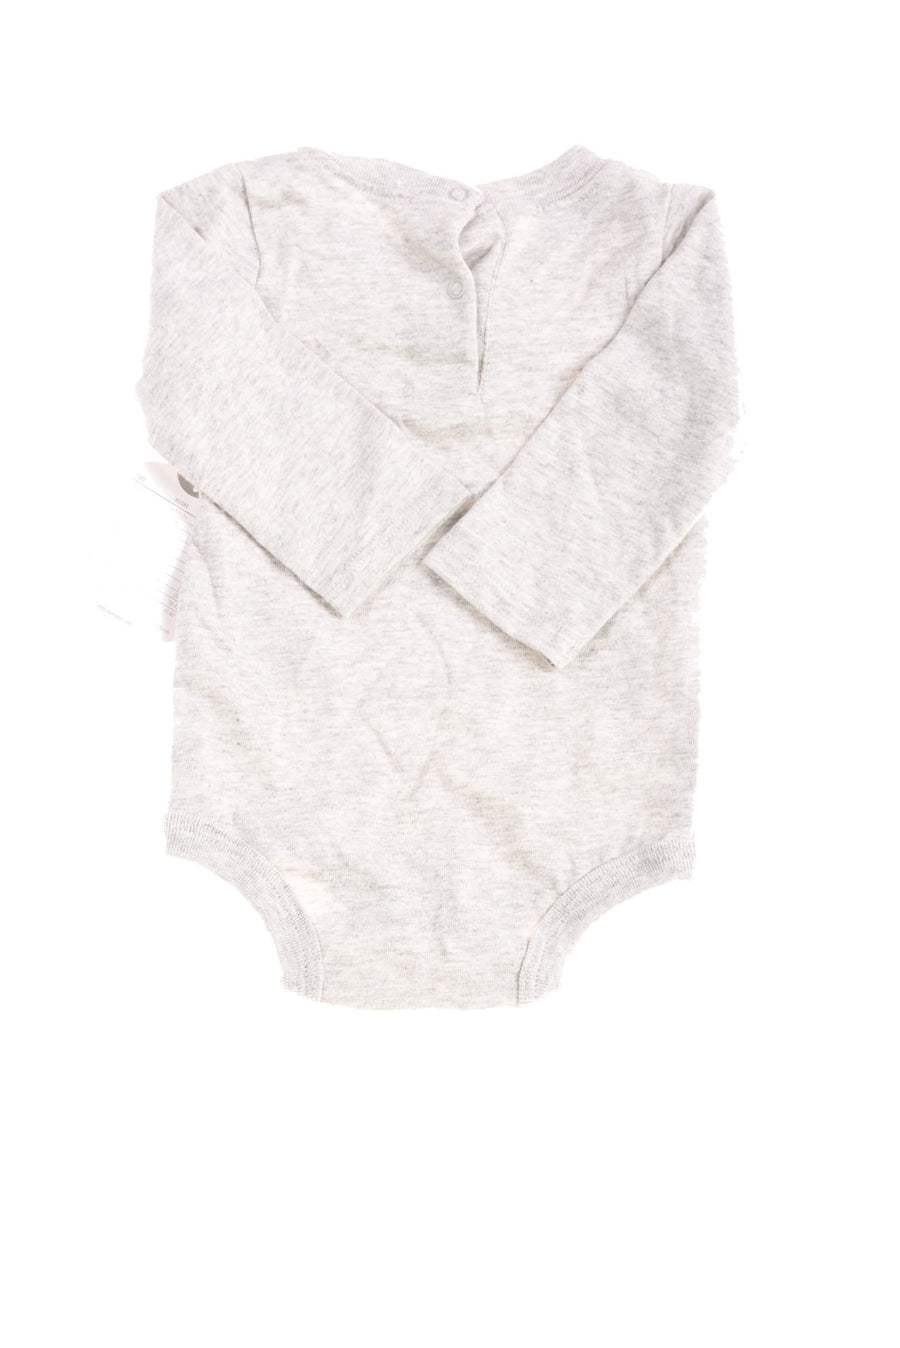 Baby Boy's One Piece Outfit By Koala Kids